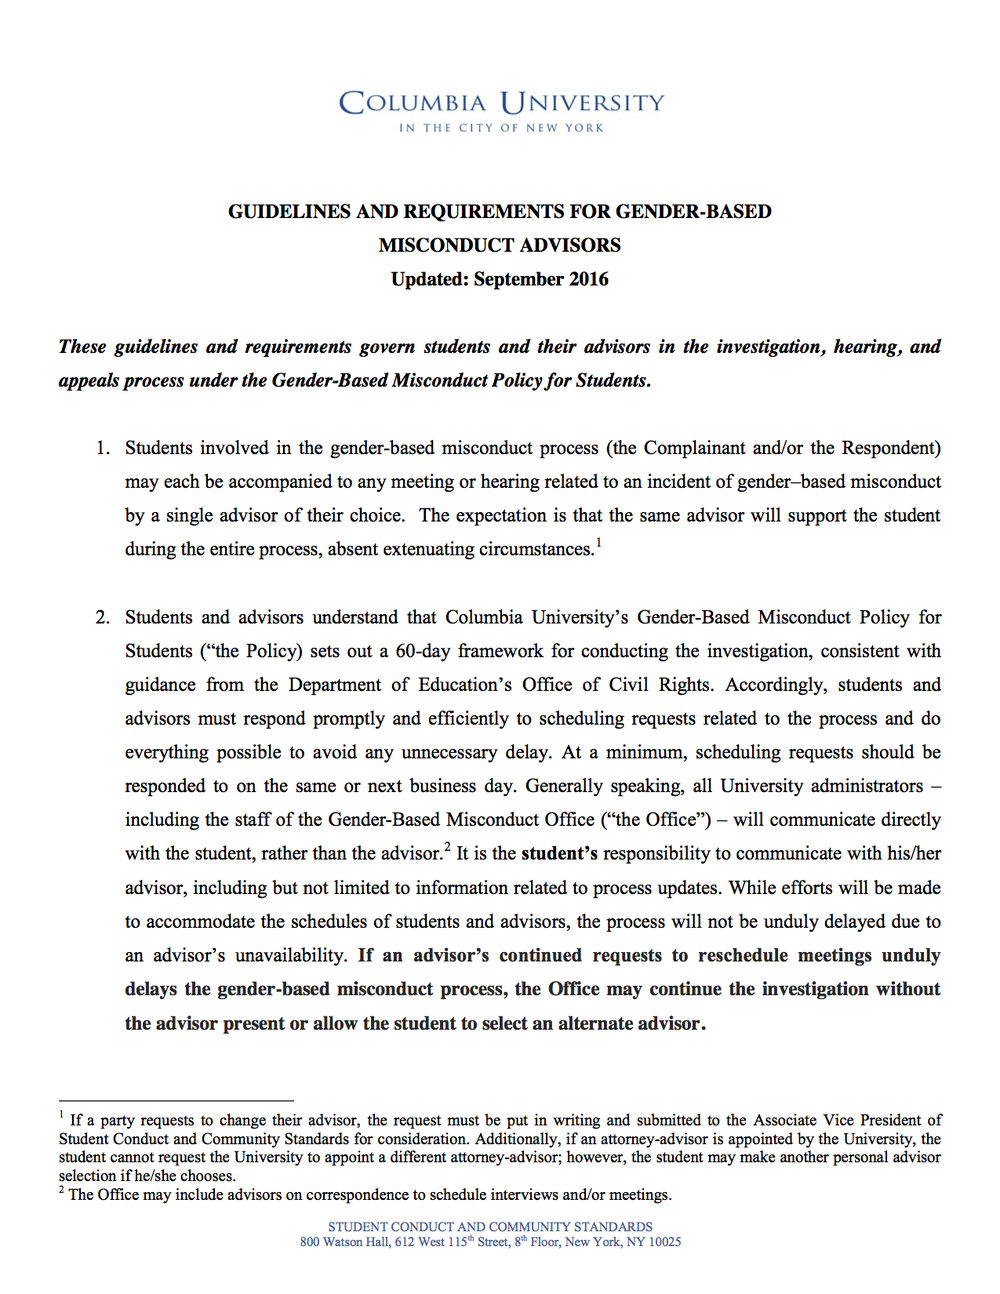 Guidelines and Requirements for Gender-Based Misconduct Advisors(1).jpg